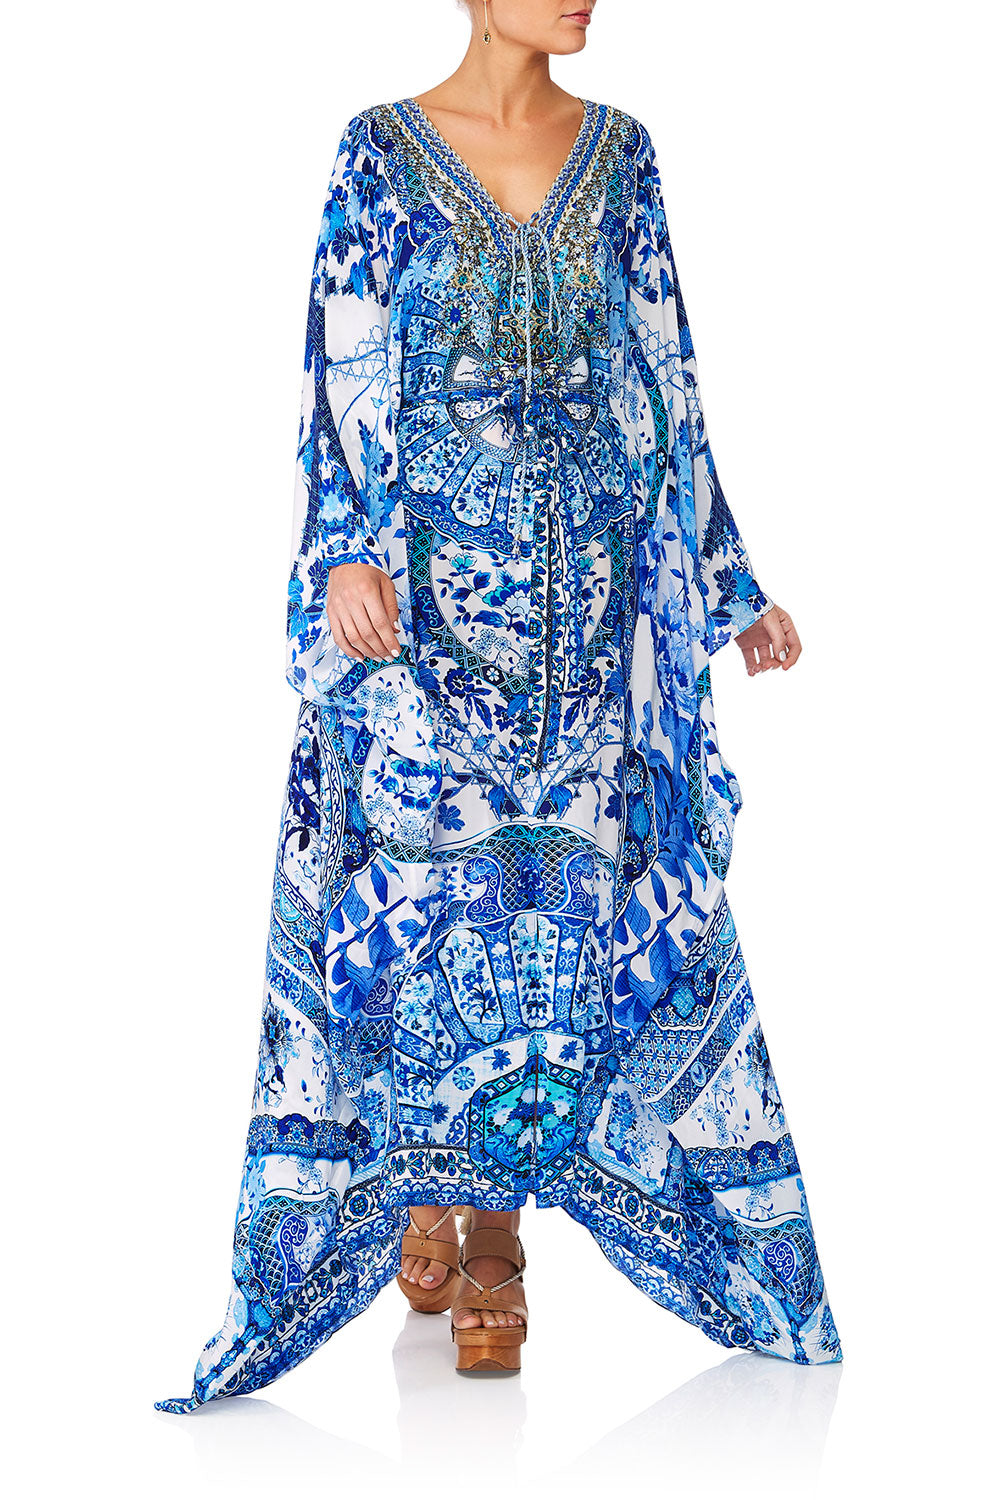 CAMILLA ETERNITYS EMPIRE SPLIT HEM LACE UP KAFTAN